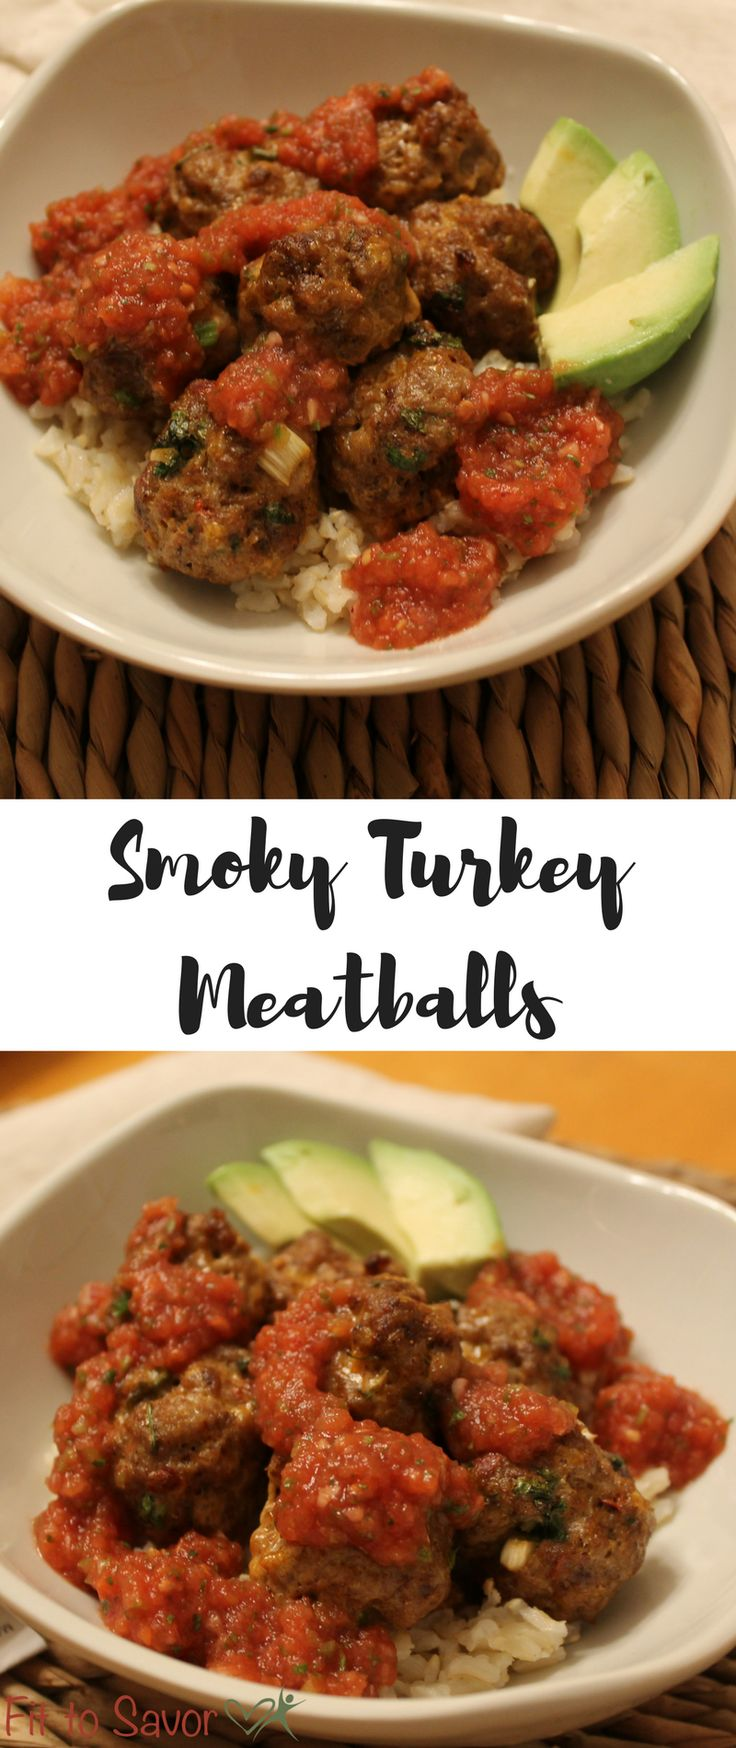 These Smoky Turkey Meatballs are soooooo flavorful! No one will ever know they're made of turkey instead of ground beef. Plus, they're easy to make and you can even make them ahead of time for meal prep! They're gluten free and 21 Day Fix friendly. Only a little bit of shredded cheese is needed to bind these together, no egg and no flours of any kind!